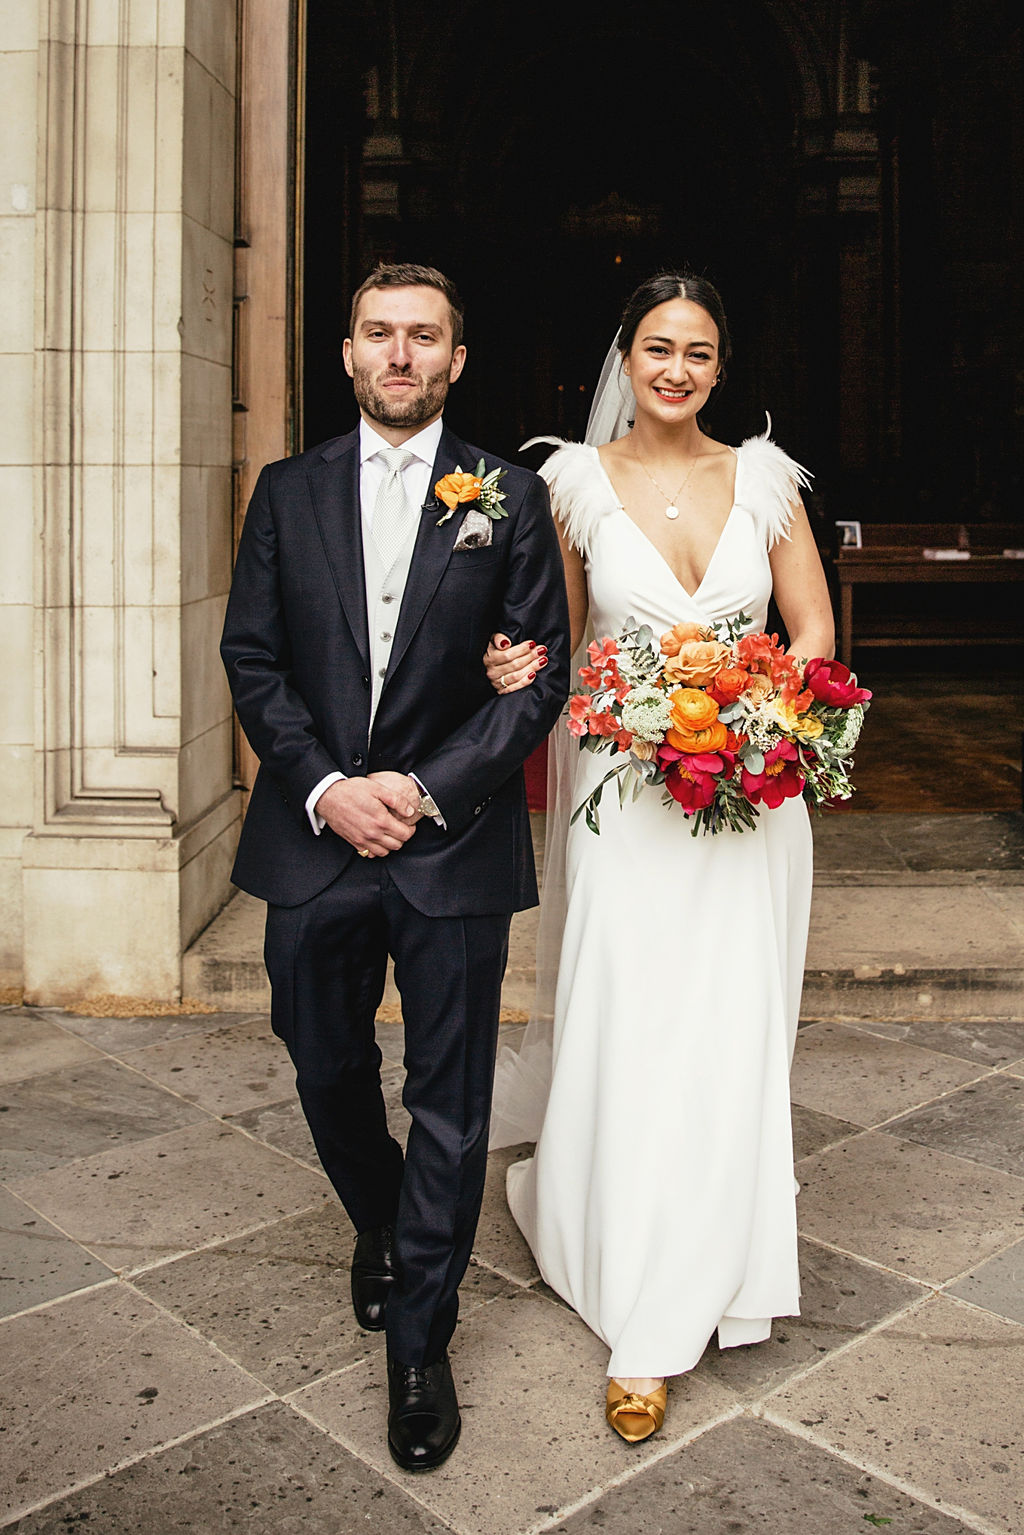 A contemporary and cool wedding at Trinity Buoy Wharf just married